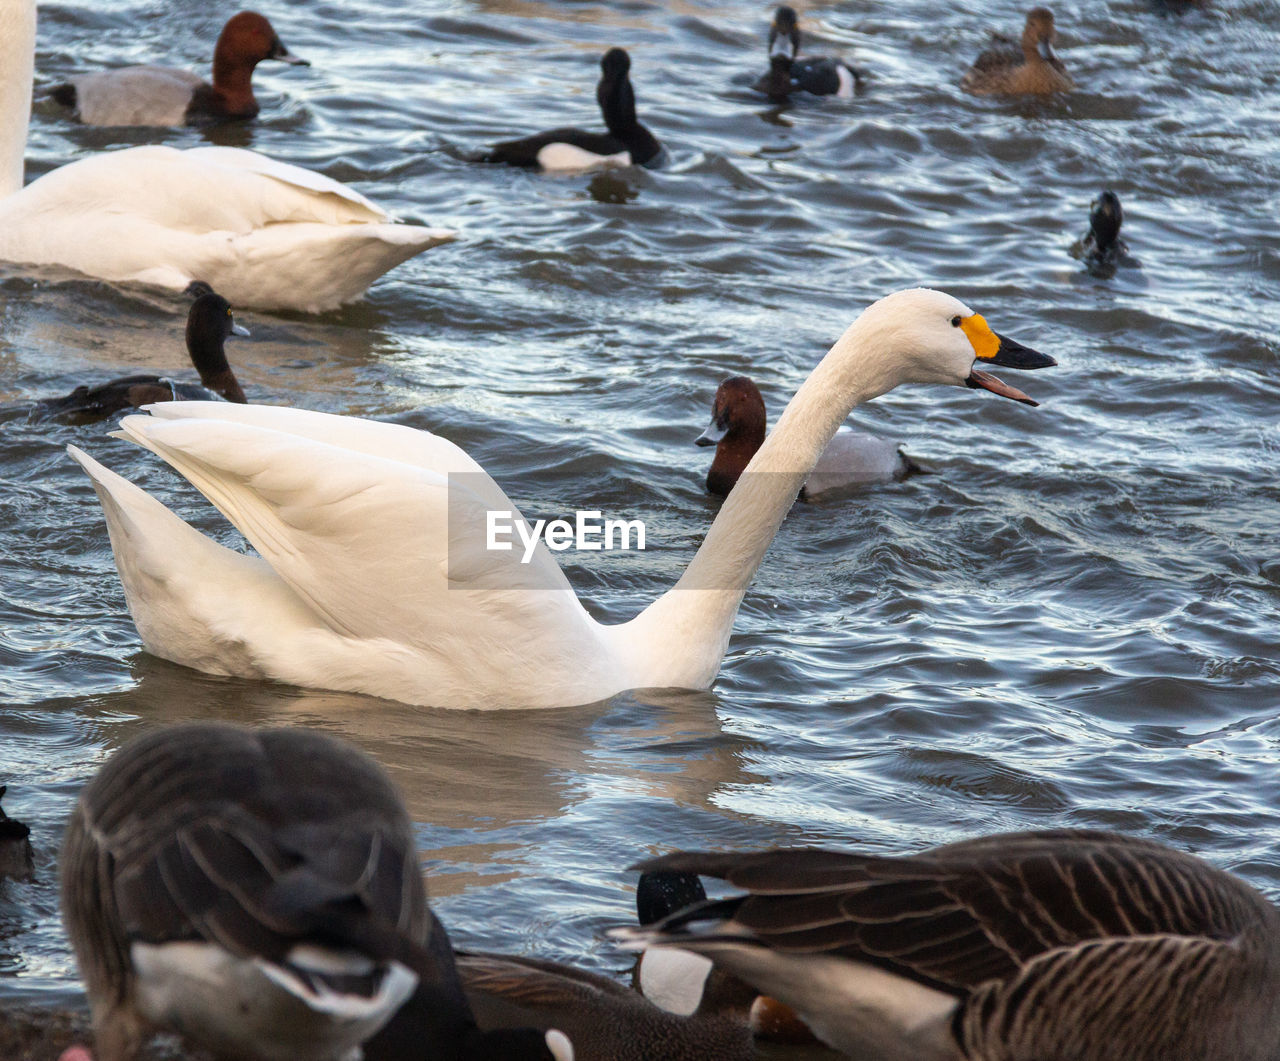 water, bird, animals in the wild, group of animals, animal wildlife, animal themes, animal, vertebrate, swimming, lake, swan, nature, no people, day, water bird, rippled, large group of animals, outdoors, beauty in nature, floating on water, flock of birds